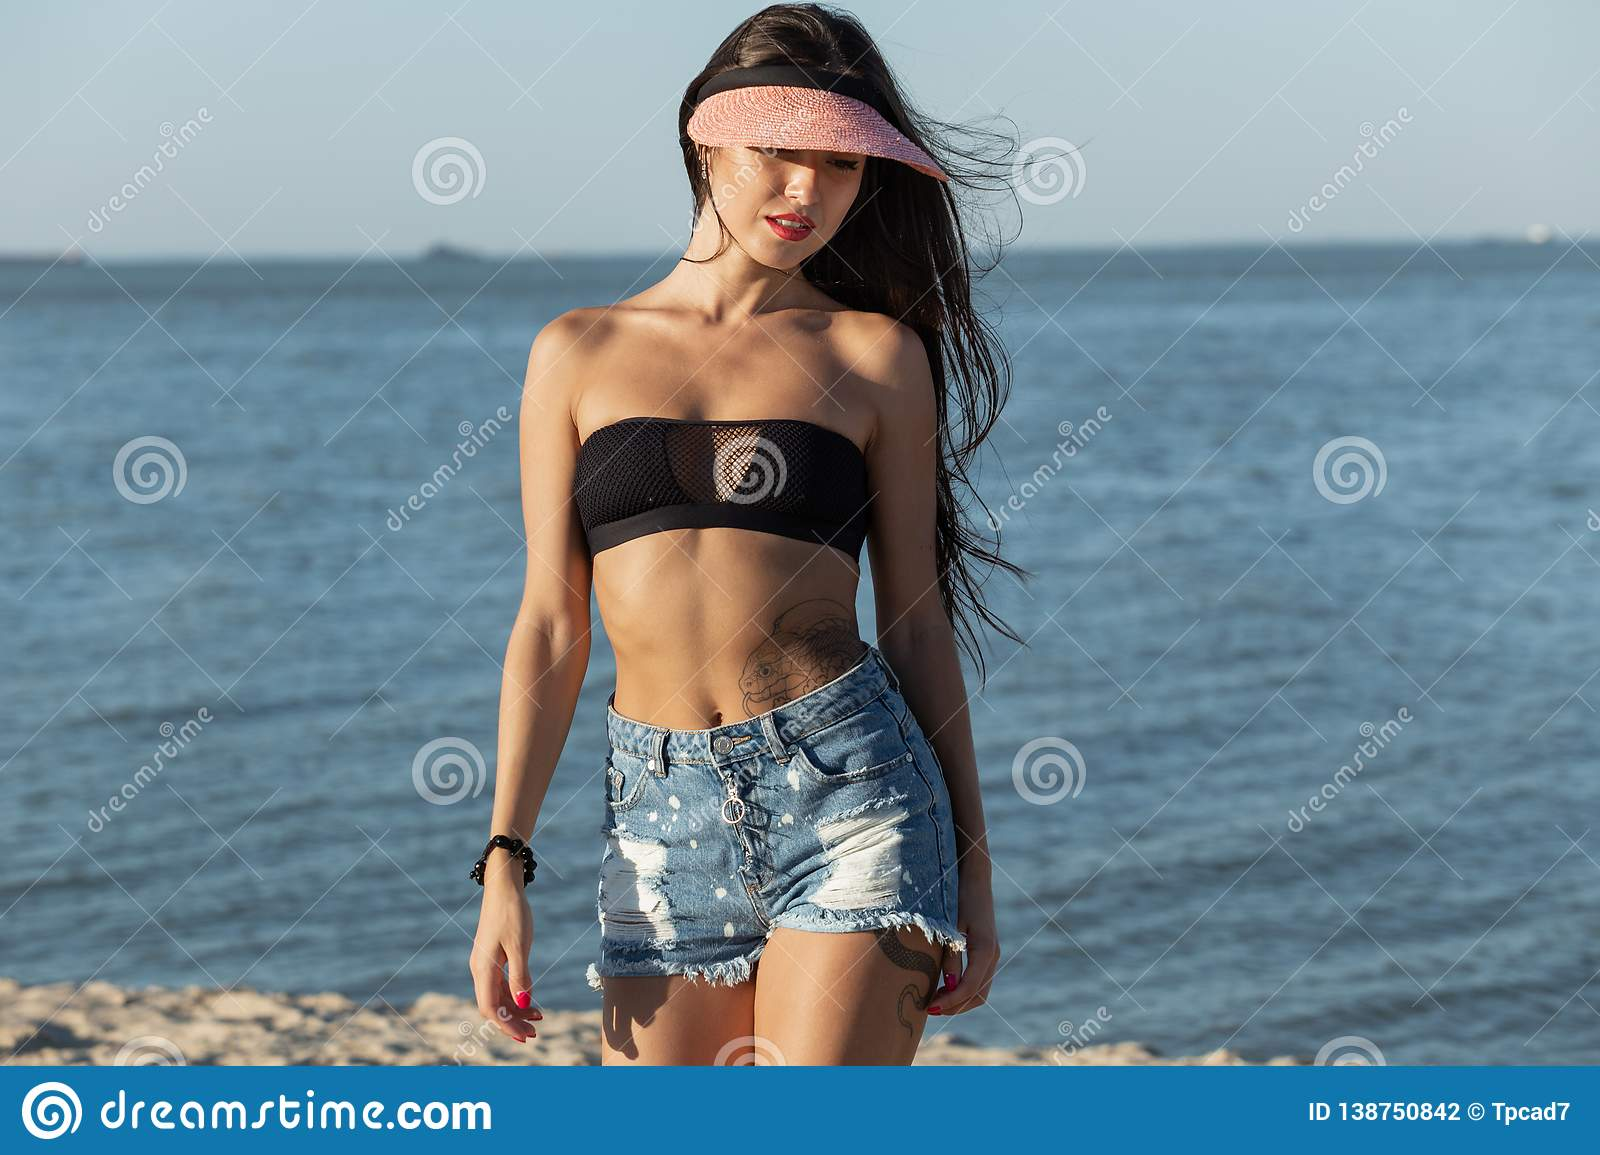 Beautiful dark-haired girl in sunglasses and cap dressed in a black bra and jean shorts is standing near the sea